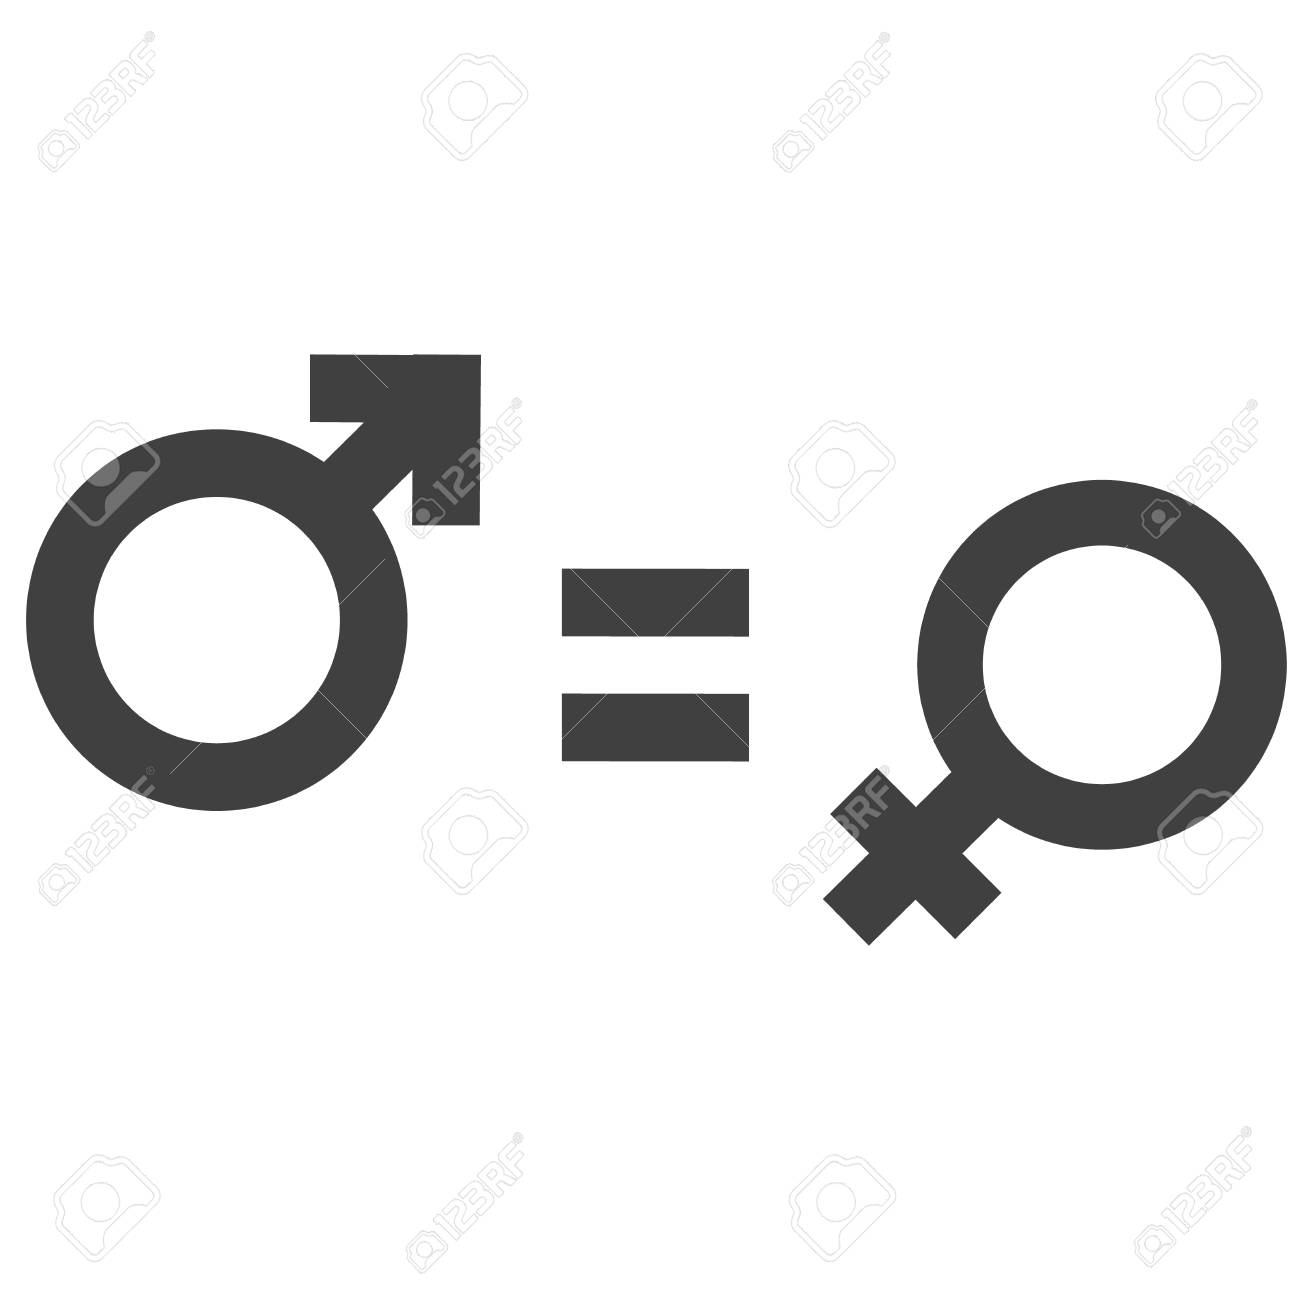 Gender Inequality And Equality Icon Symbol Male Female Girl Stock